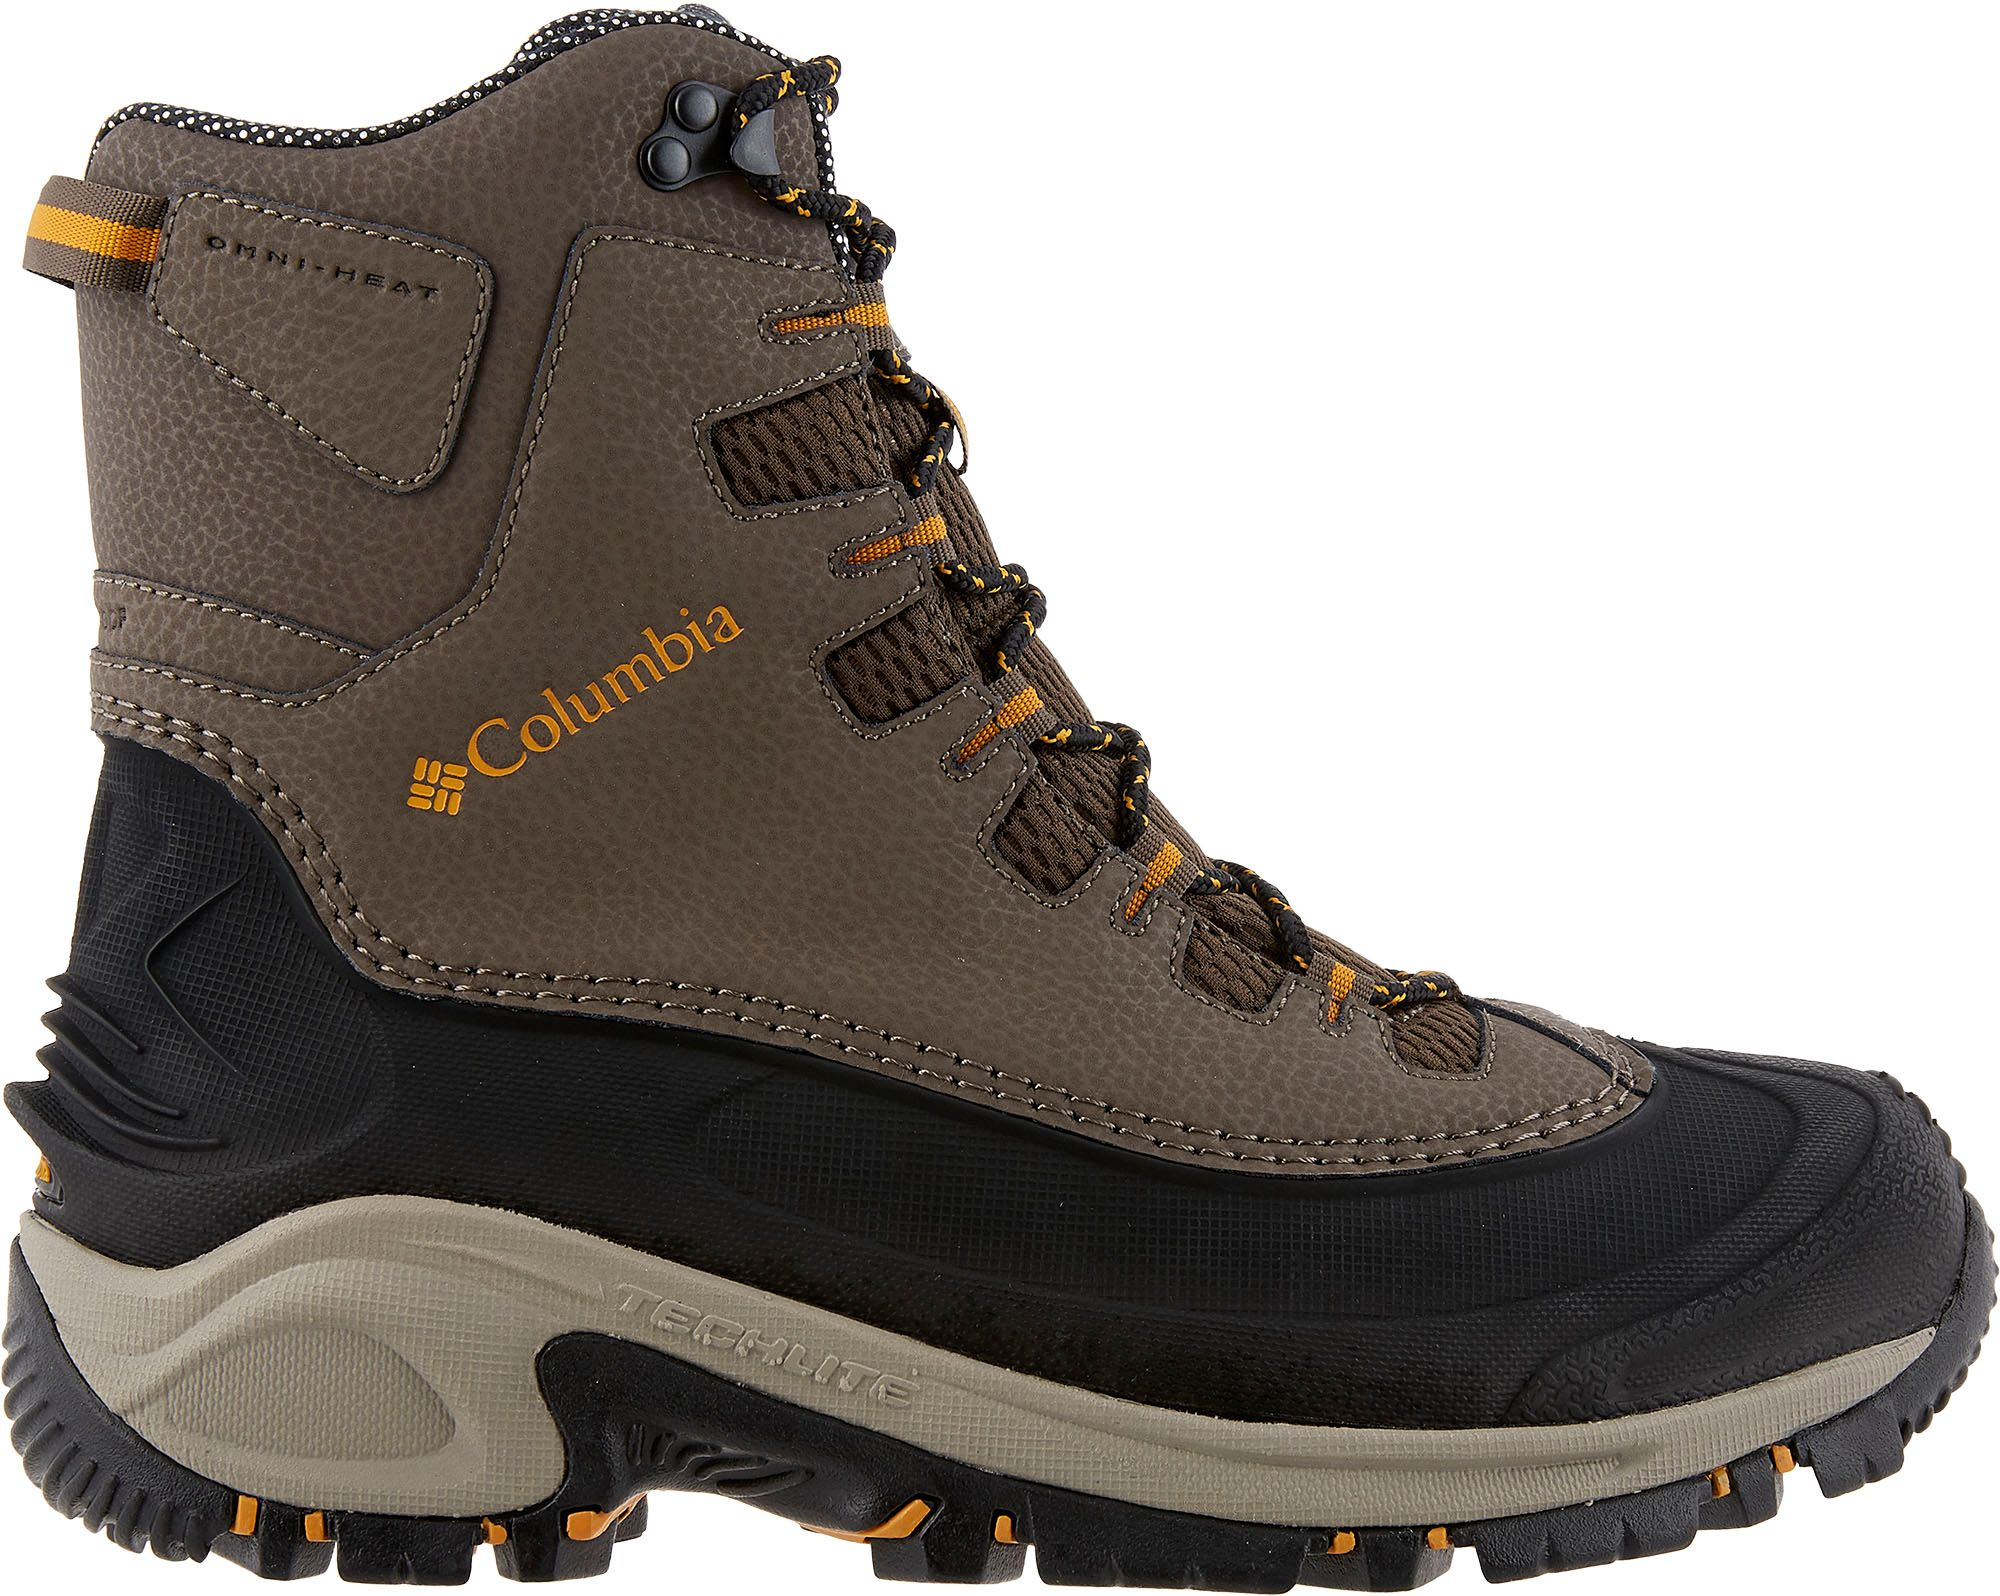 Columbia Men's Bugaboot II Omni-Heat 400g Waterproof Winter Boots | DICK'S  Sporting Goods